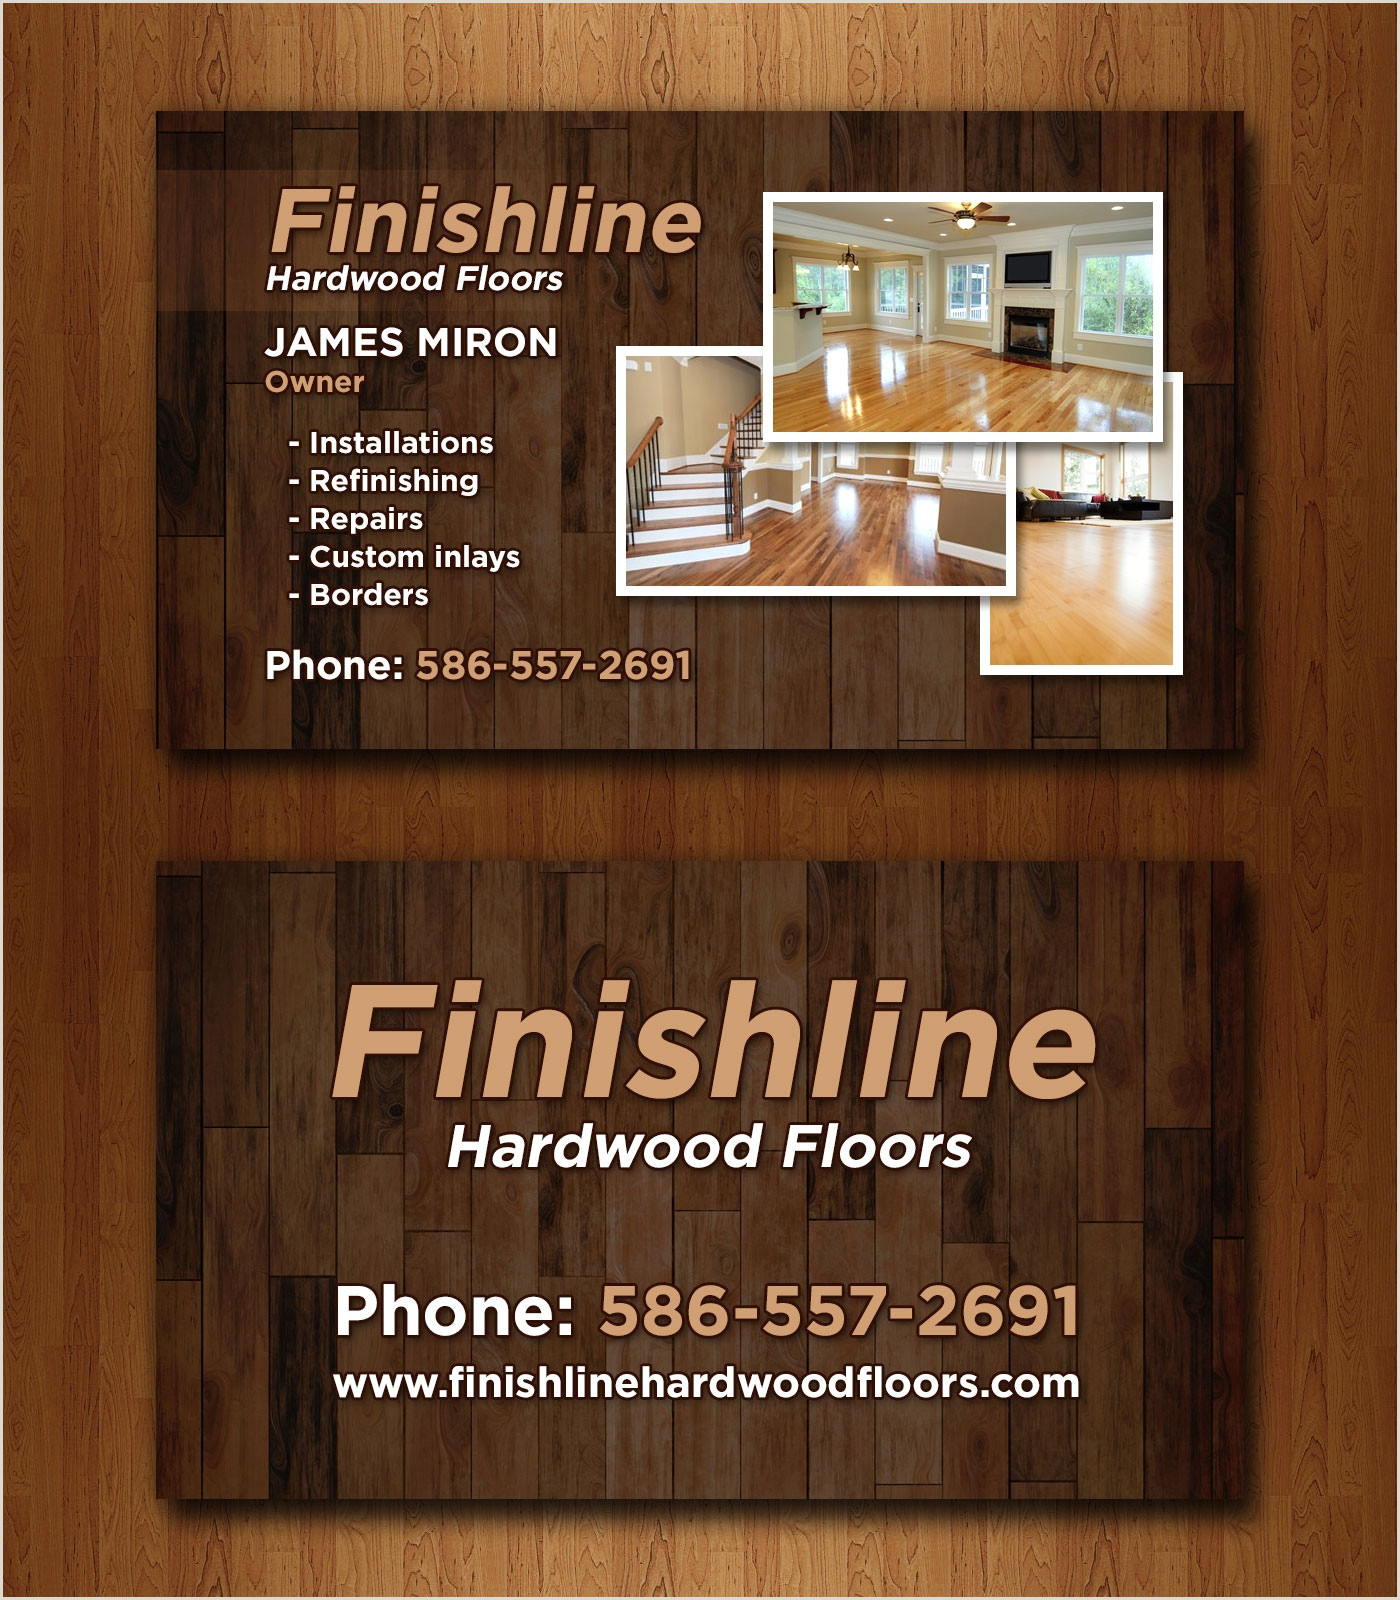 What To Put On Personal Business Cards 14 Popular Hardwood Flooring Business Card Template